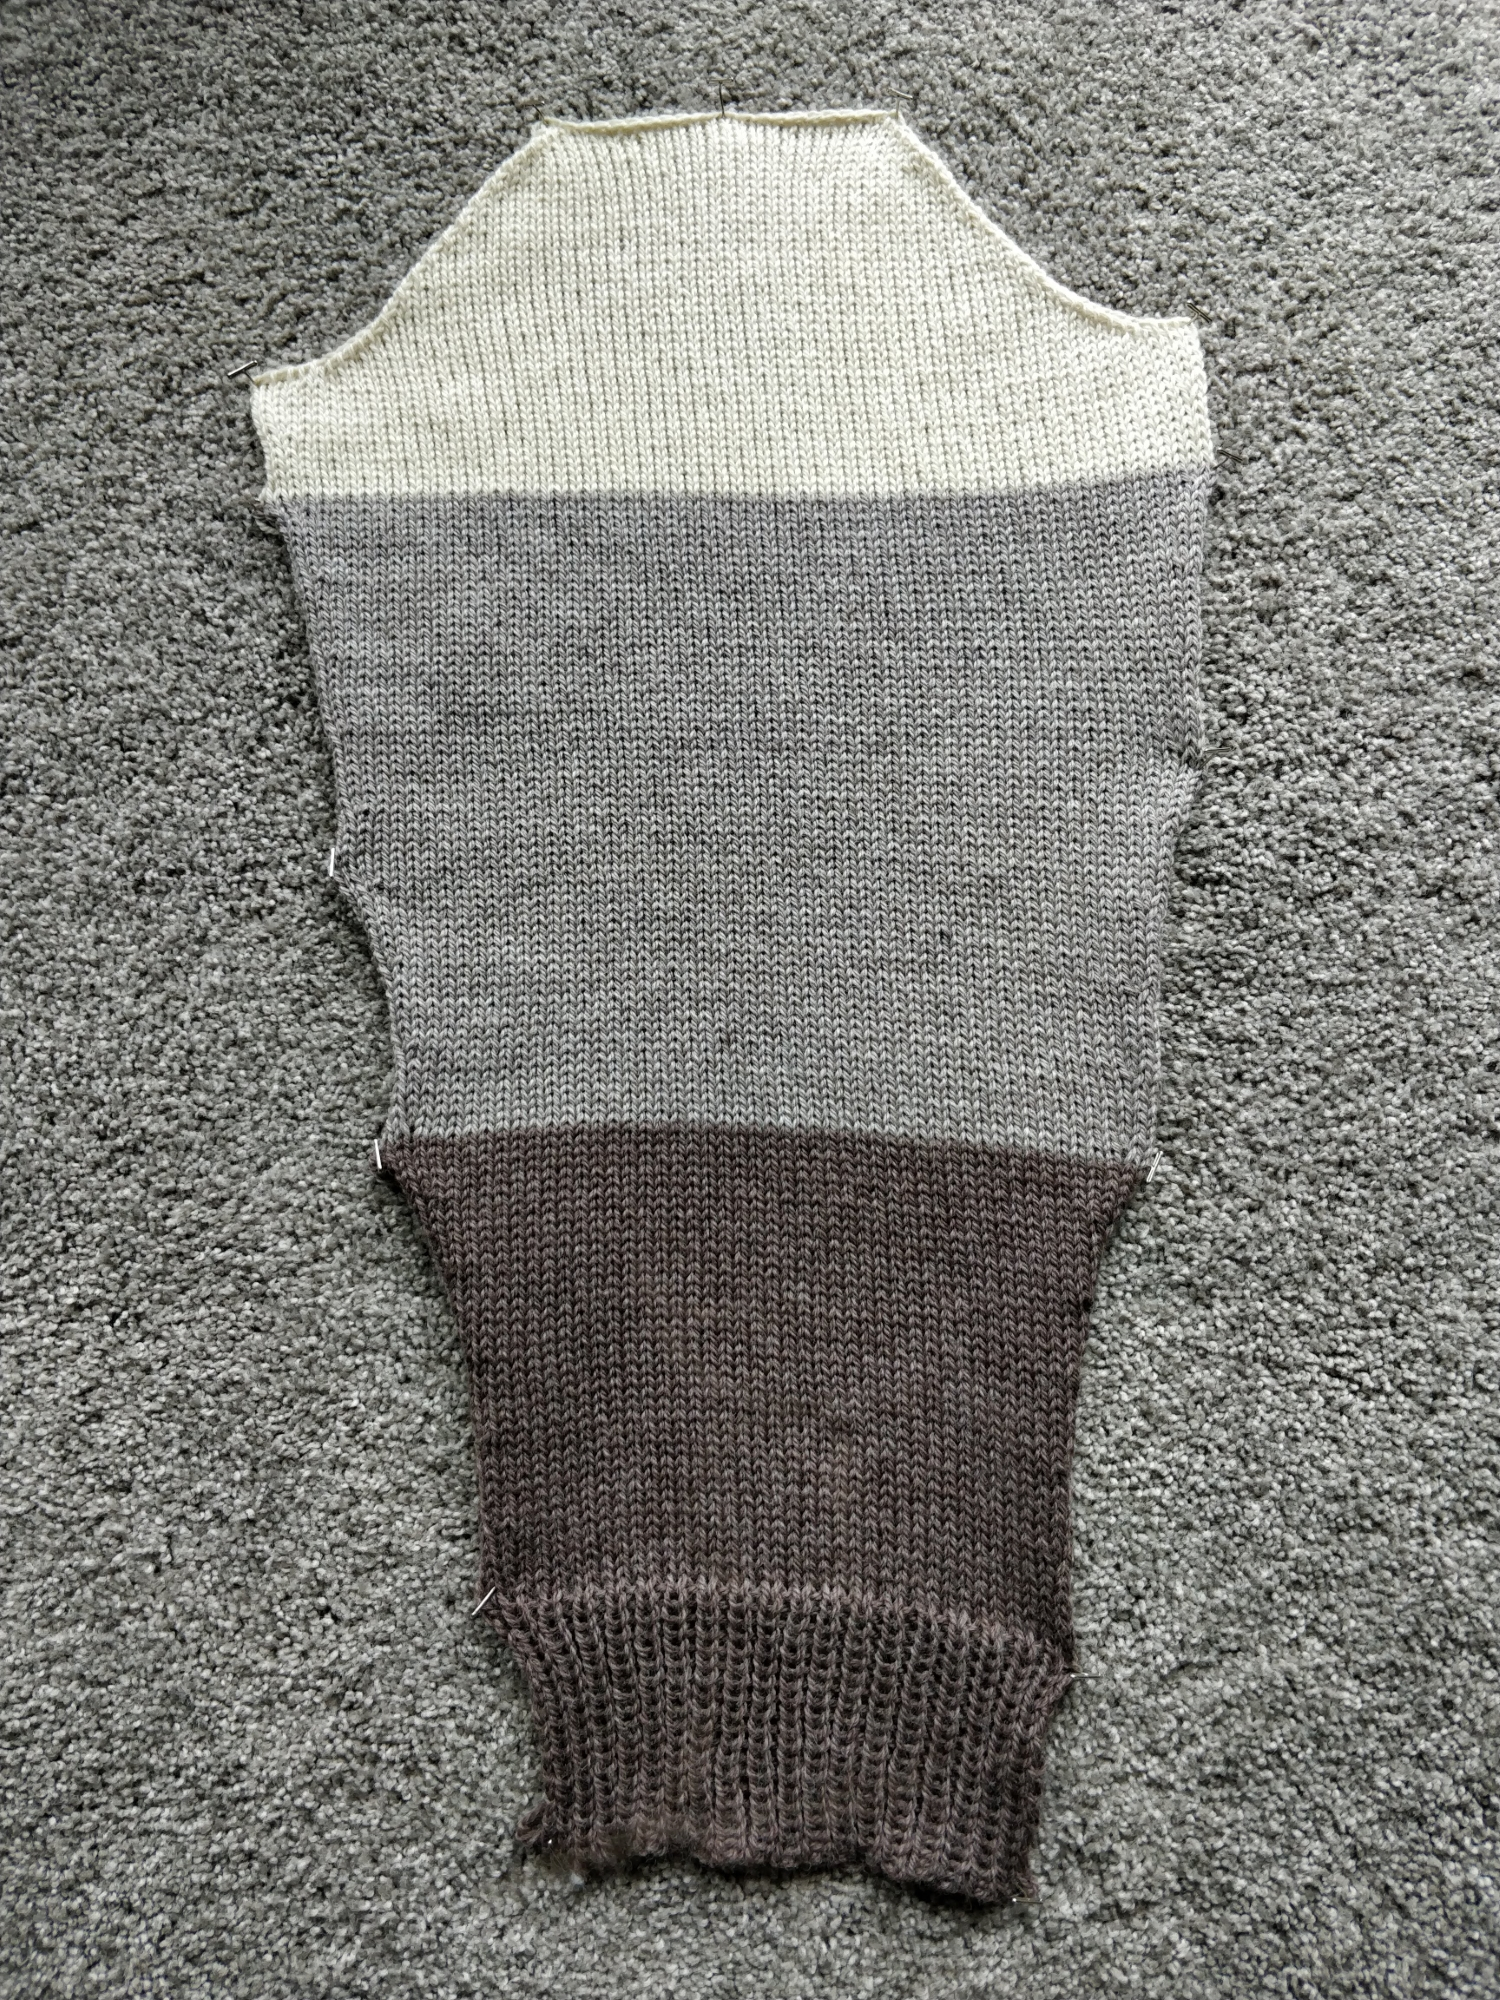 One sleeve of a colourblock sweater - cream at the top, light grayish tan in the middle, and darker brown at the bottom.